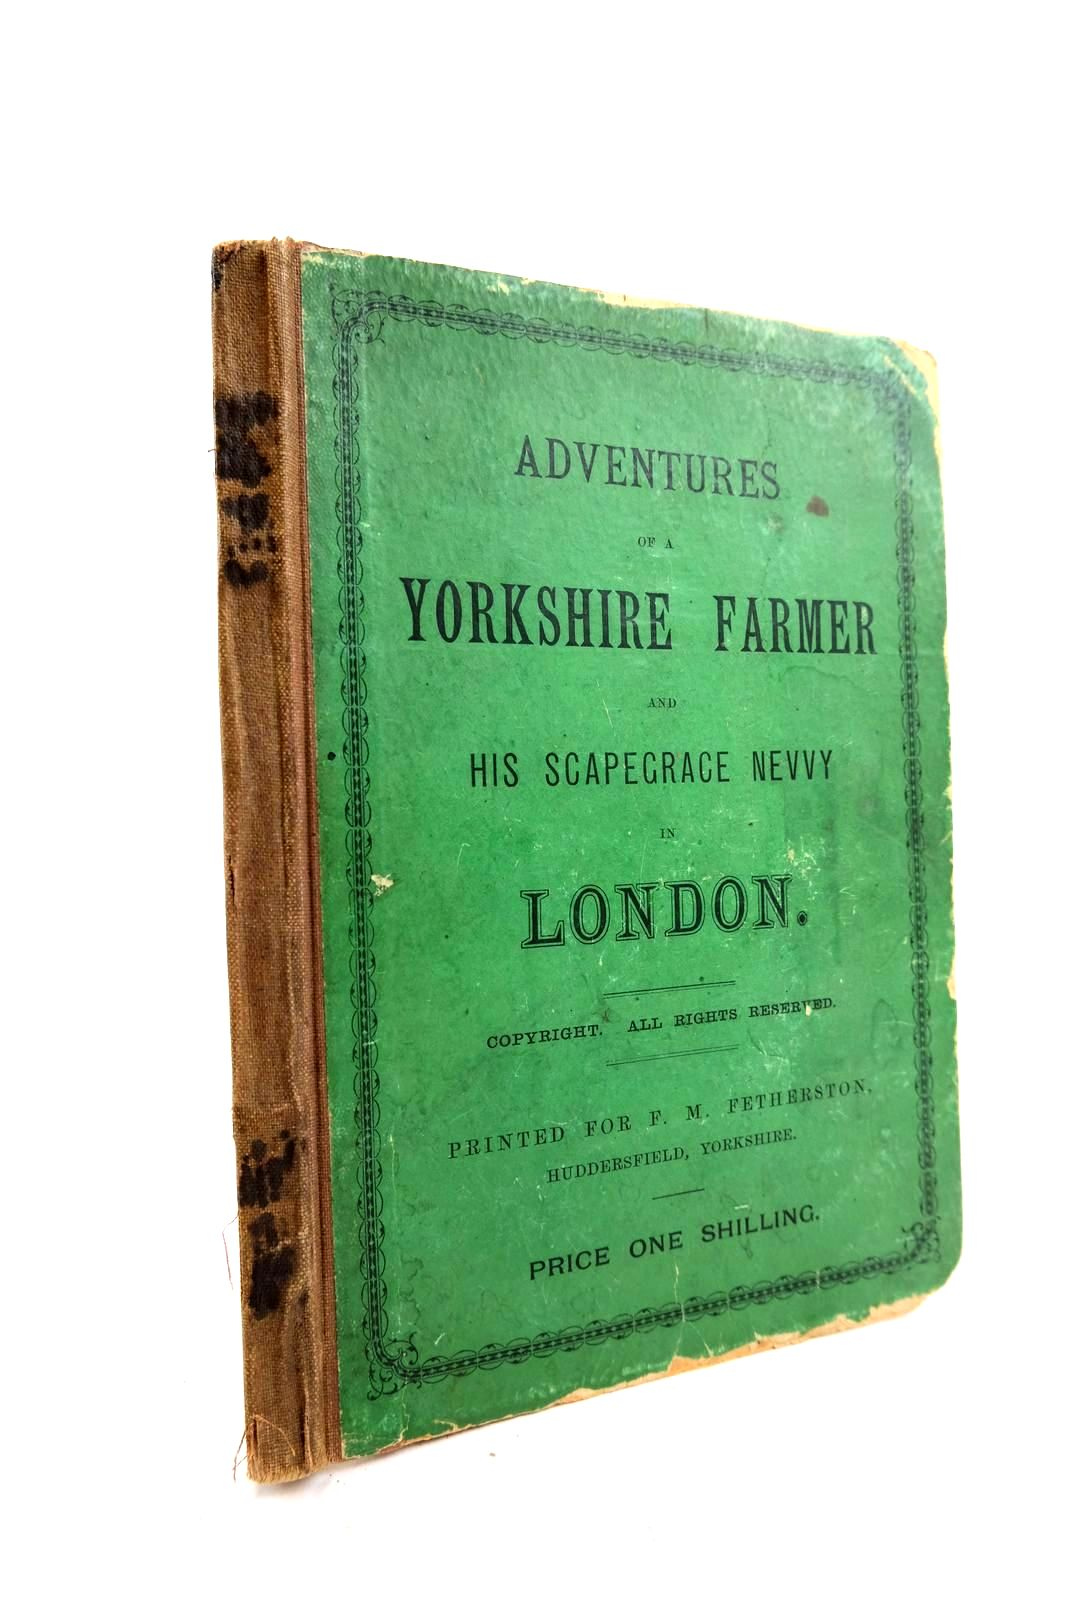 Photo of ADVENTURES OF A YORKSHIRE FARMER AND HIS SCAPEGRACE NEVVY written by Goorkrodger, Timothy published by F.M. Fetherston (STOCK CODE: 2133863)  for sale by Stella & Rose's Books